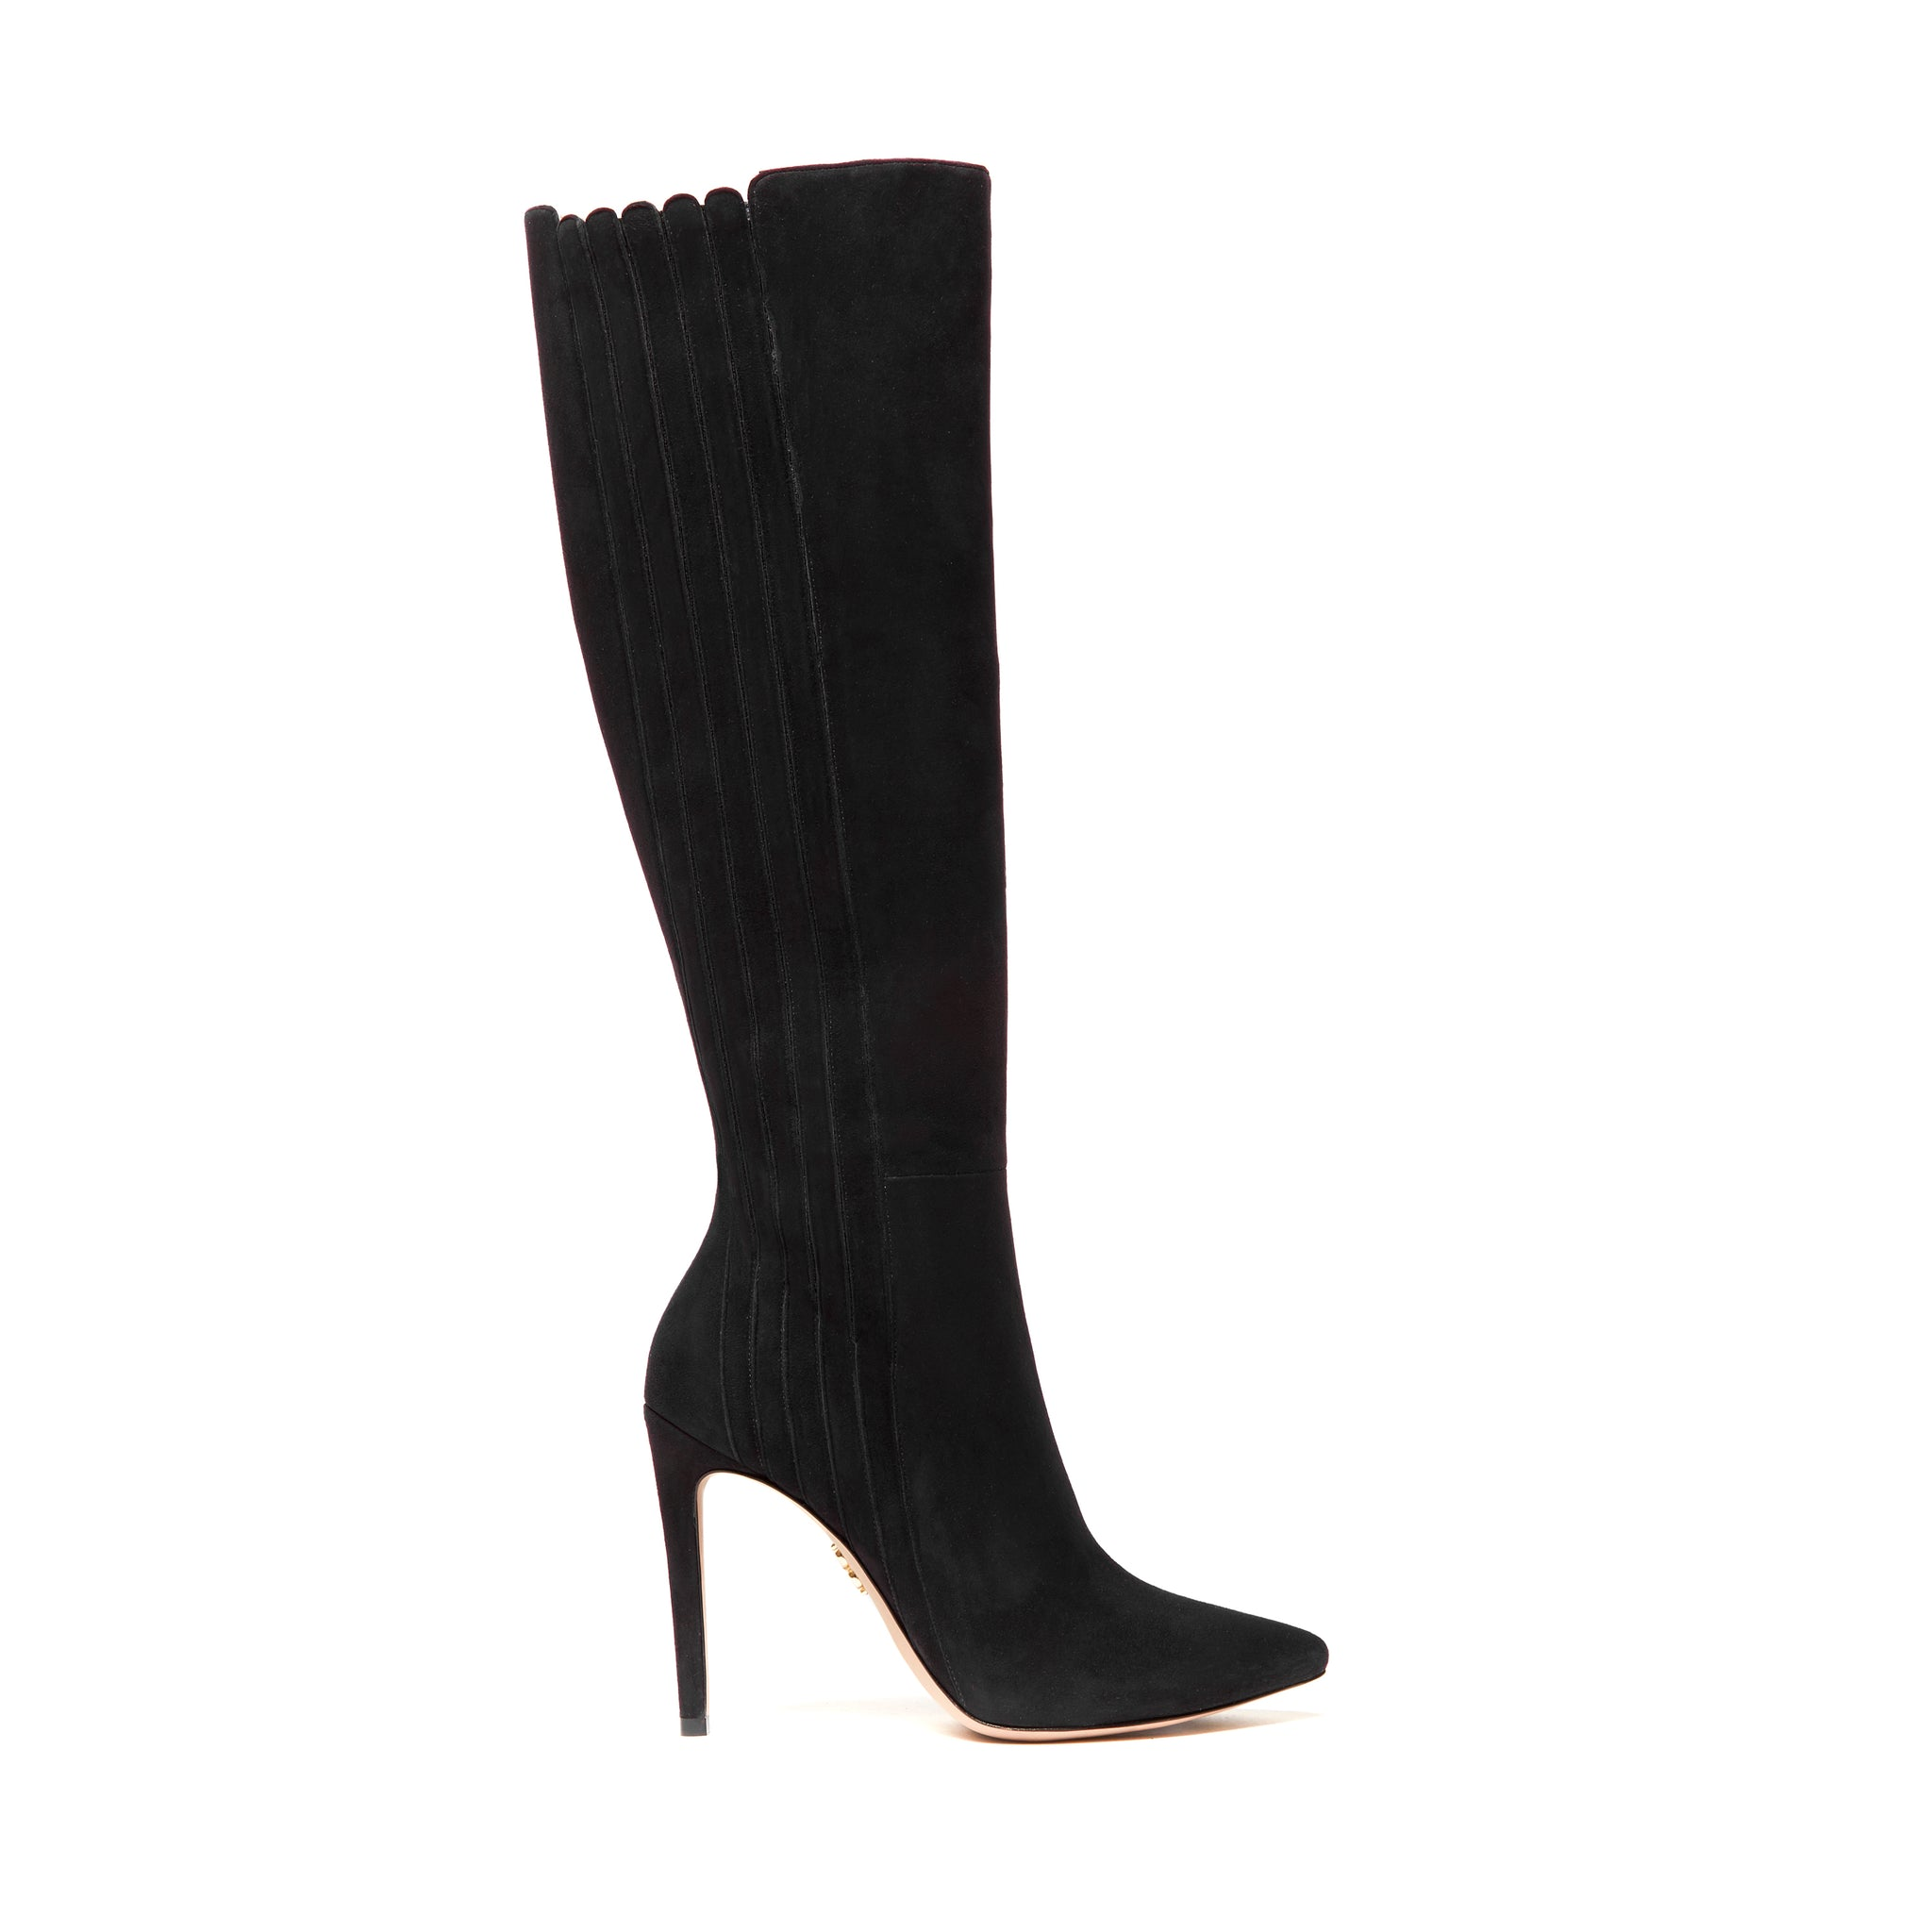 ANAIS Knee Boots - Black (105mm)